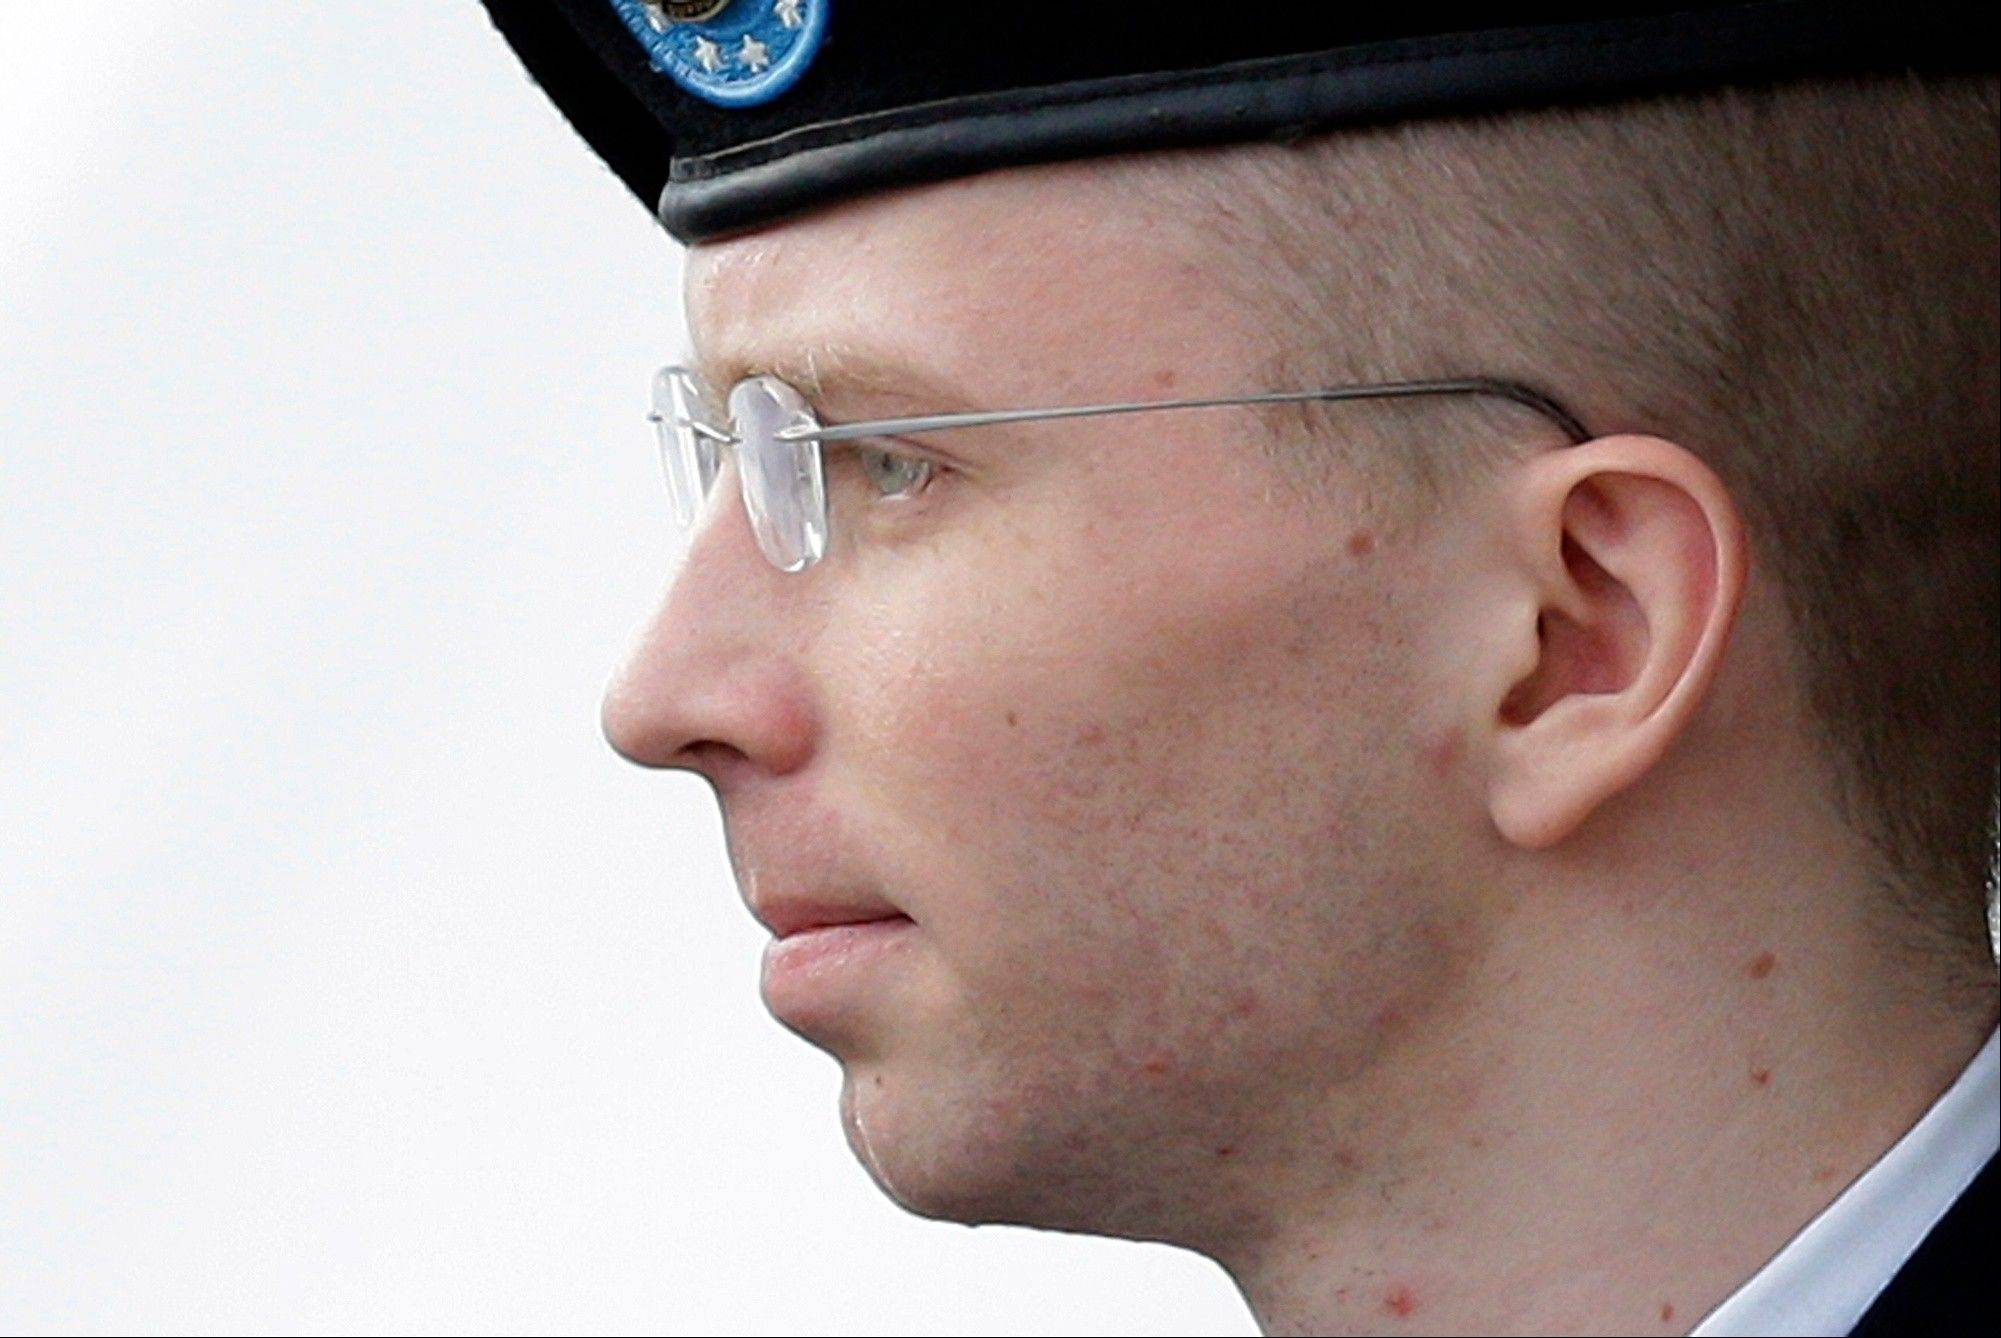 Army Pfc. Bradley Manning was sentenced to 35 years in prison for giving military secrets to the website WikiLeaks.